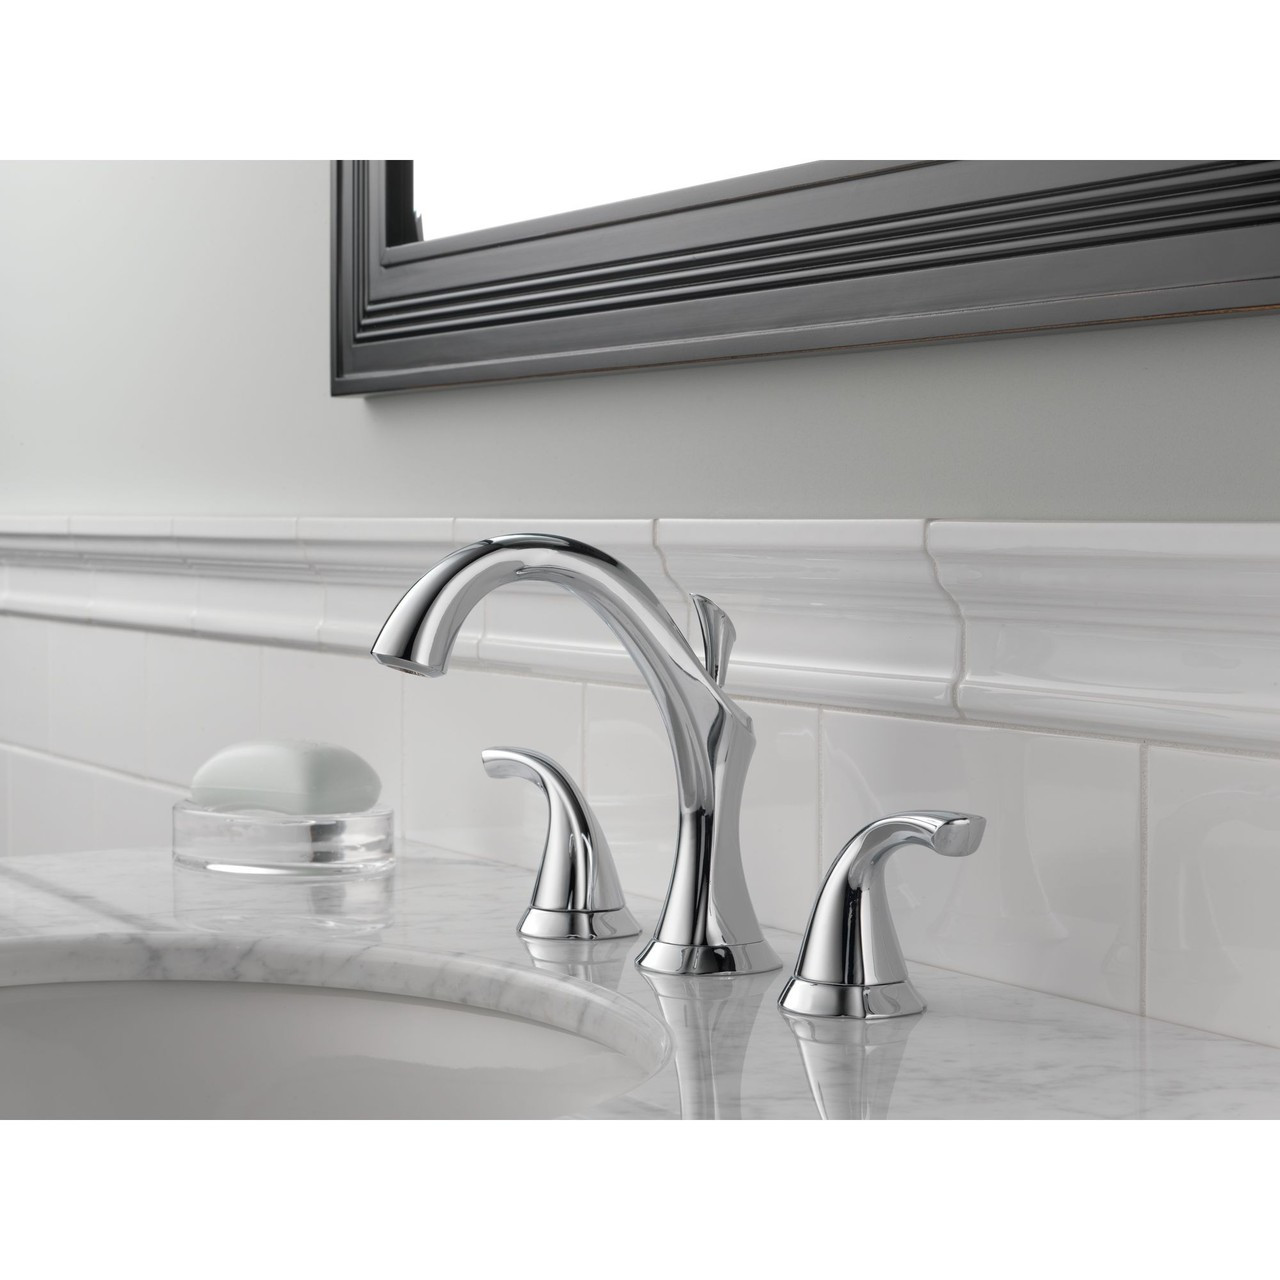 Delta addison two handle widespread lavatory faucet in chrome 09d 3592lf 09d 3592lf for Delta widespread bathroom faucet